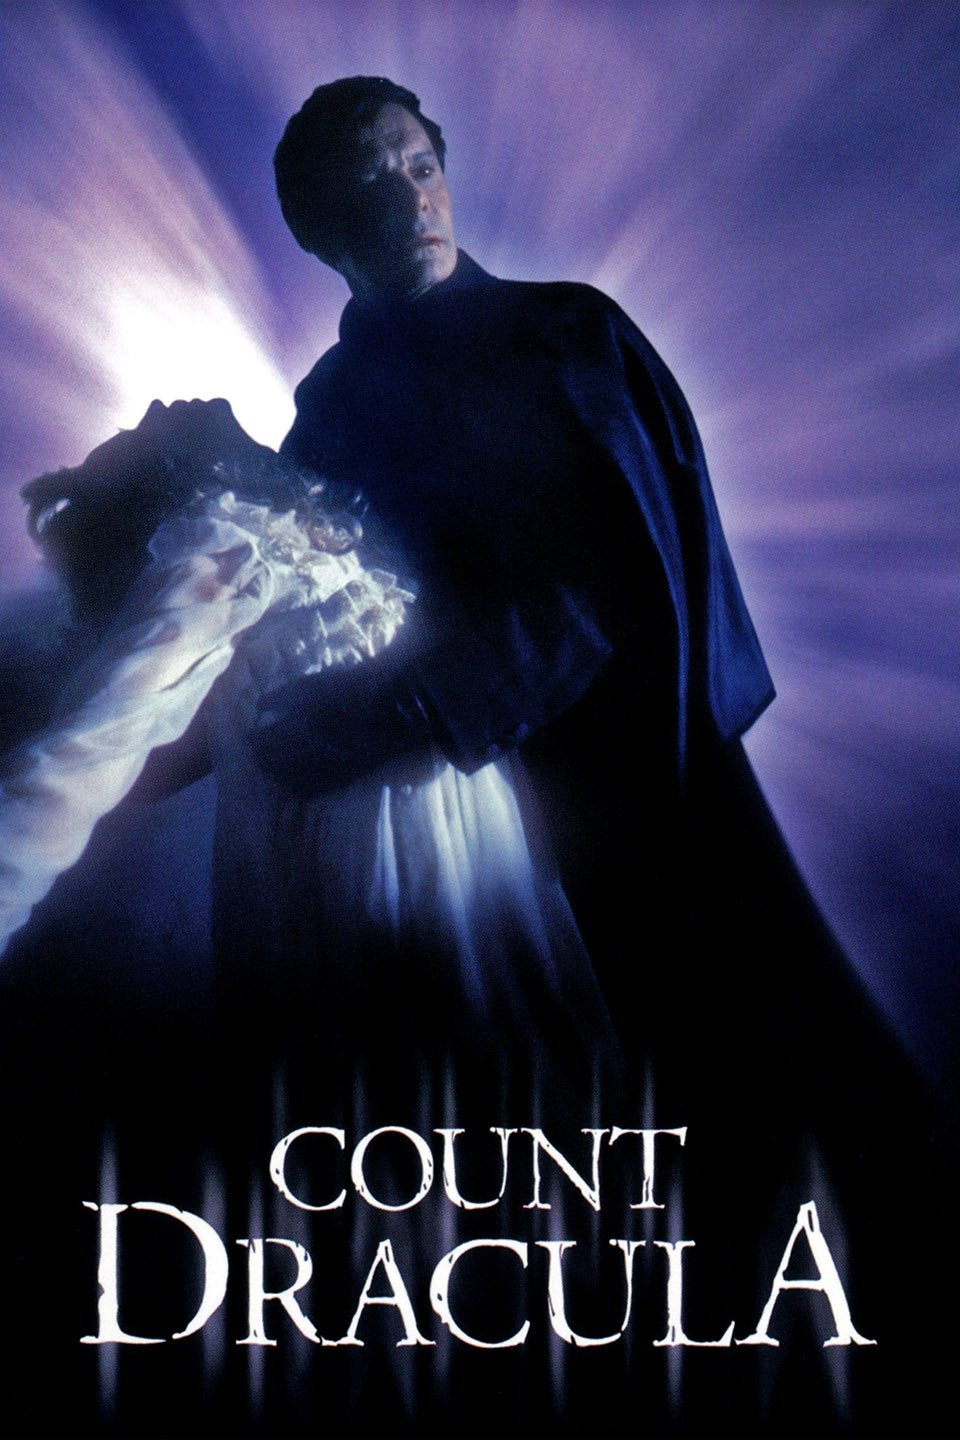 Count Dracula Dvd (1977)